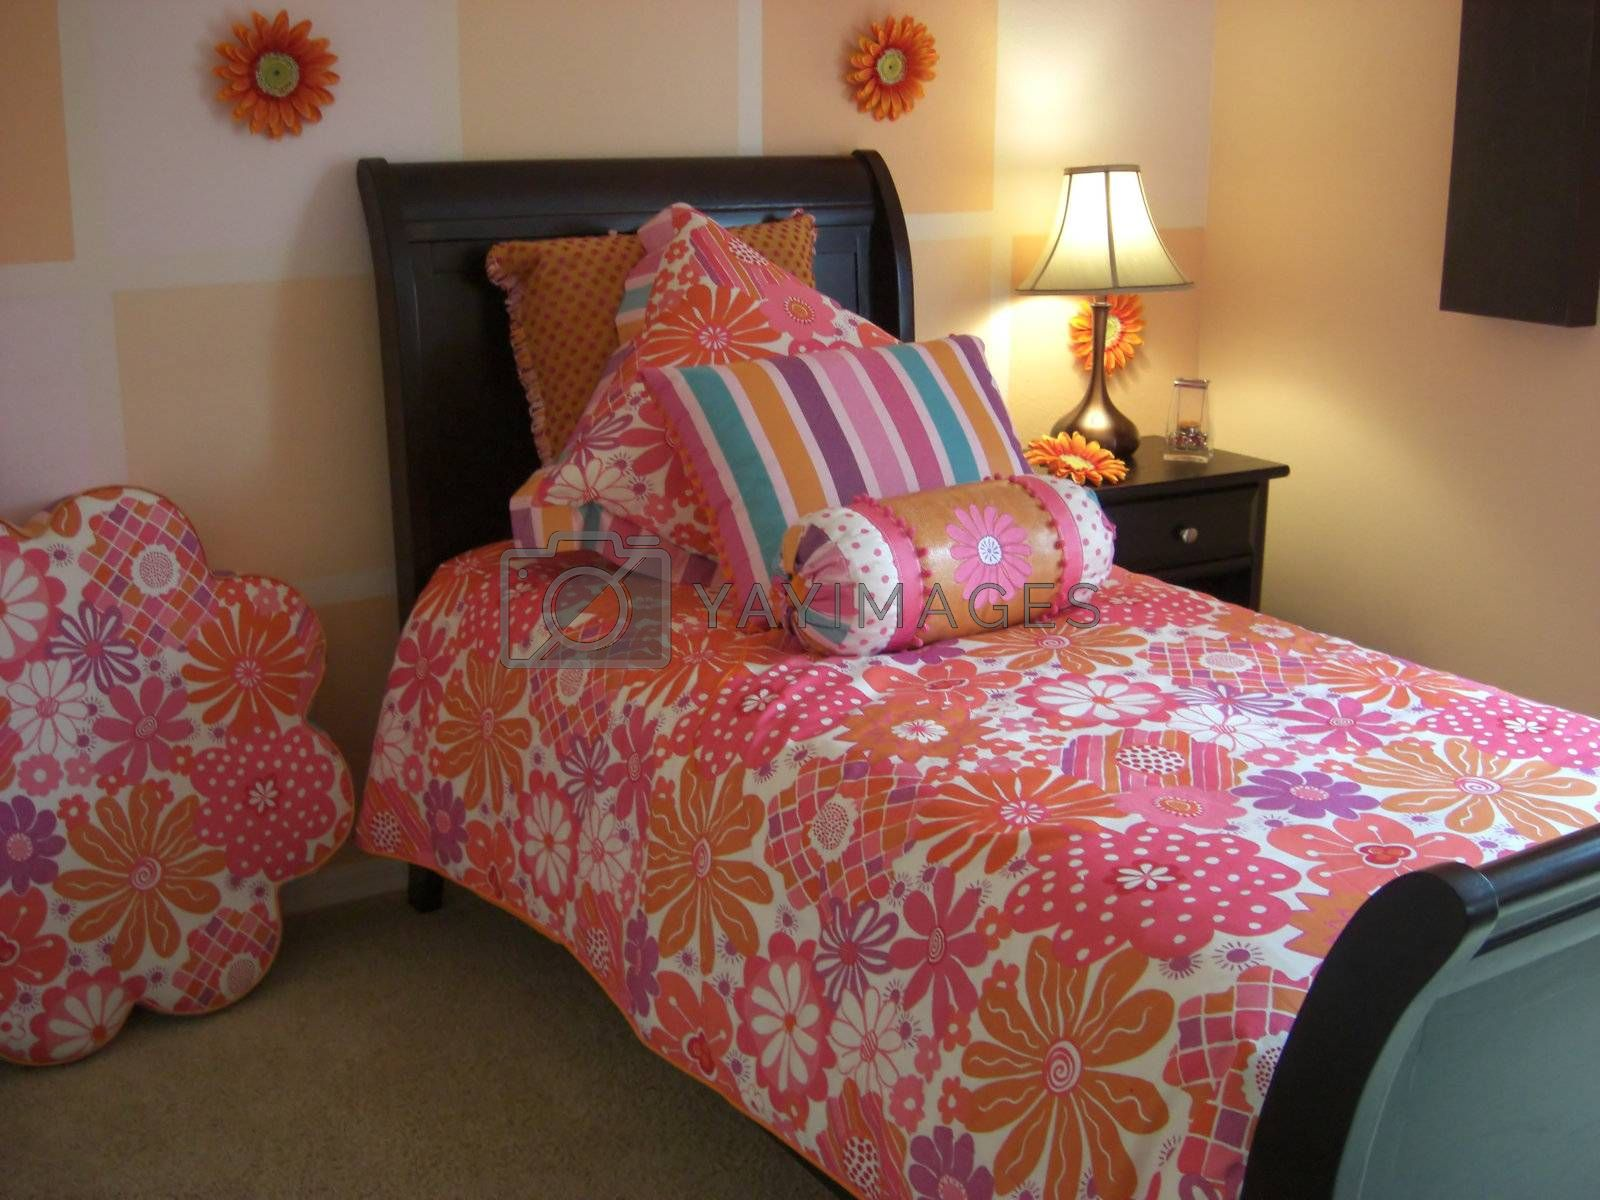 A bedroom is designed in a color coordination of pink.